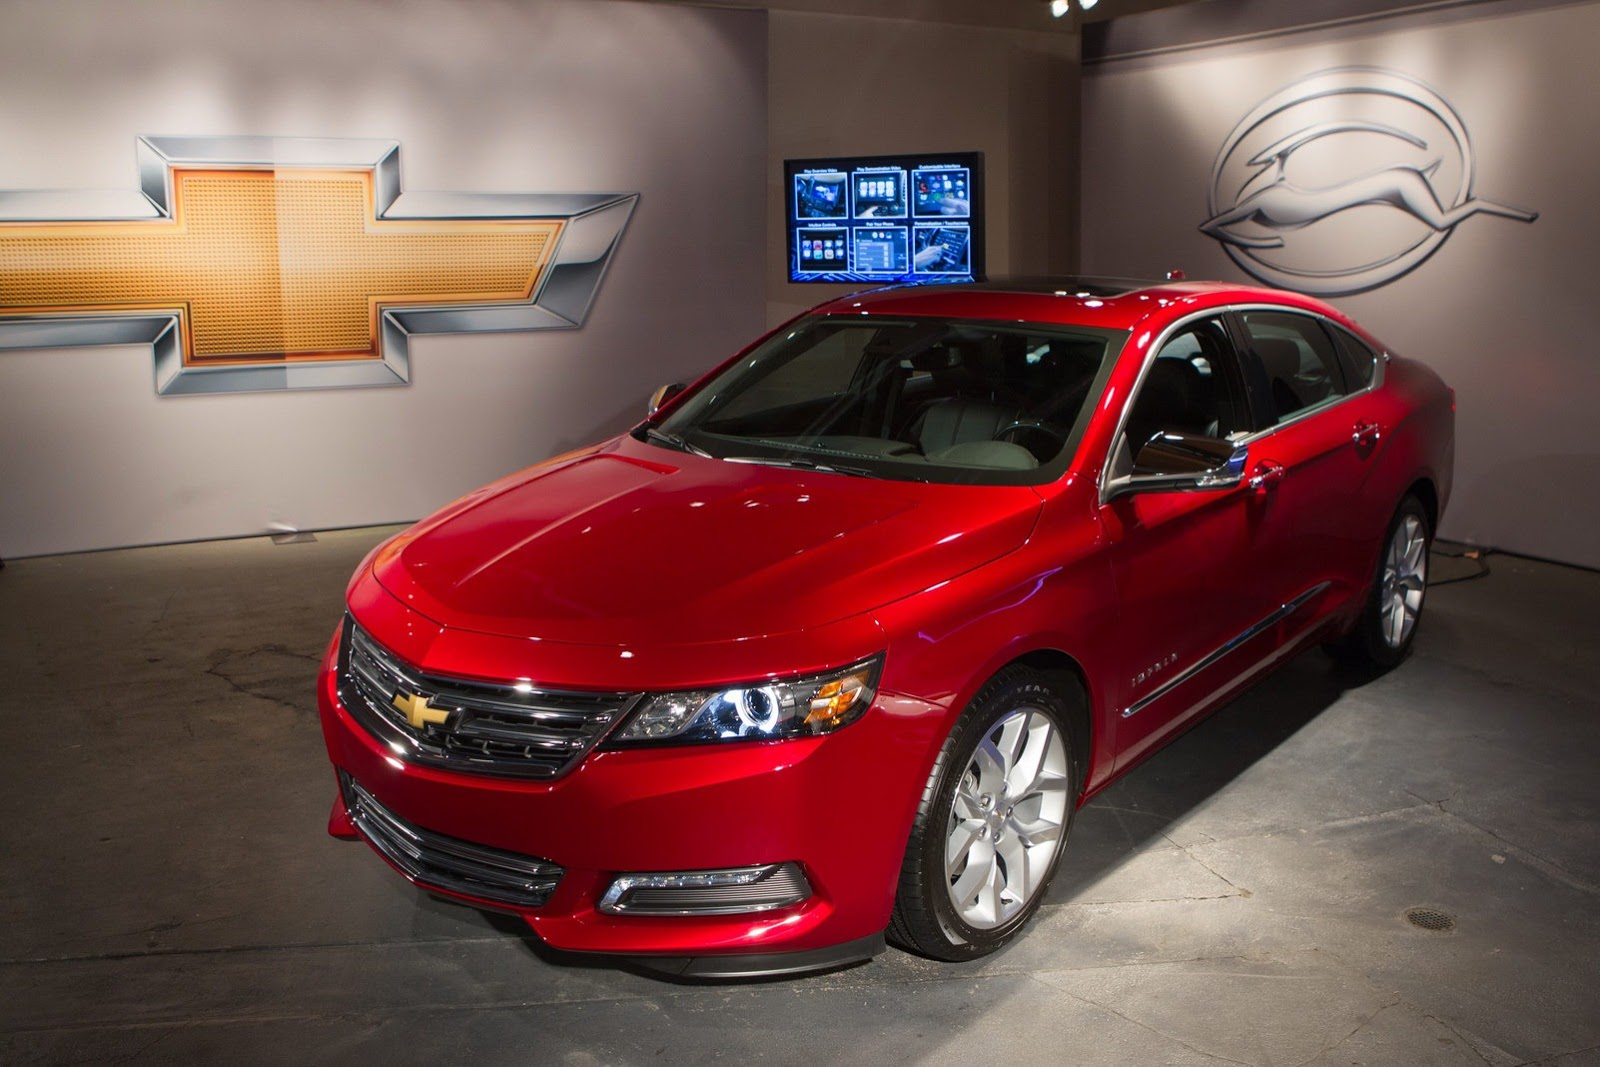 new 2014 chevrolet impala starts from 28 445 in canada cars sketches. Black Bedroom Furniture Sets. Home Design Ideas